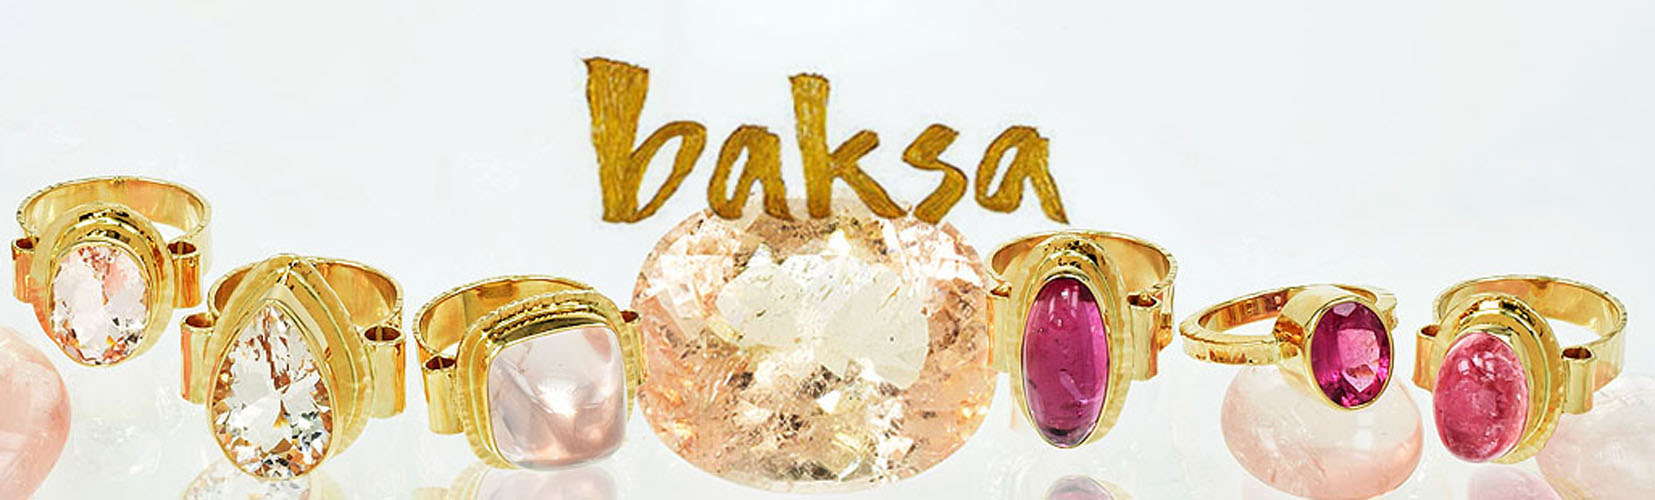 Baksa Studio Art Jewelry